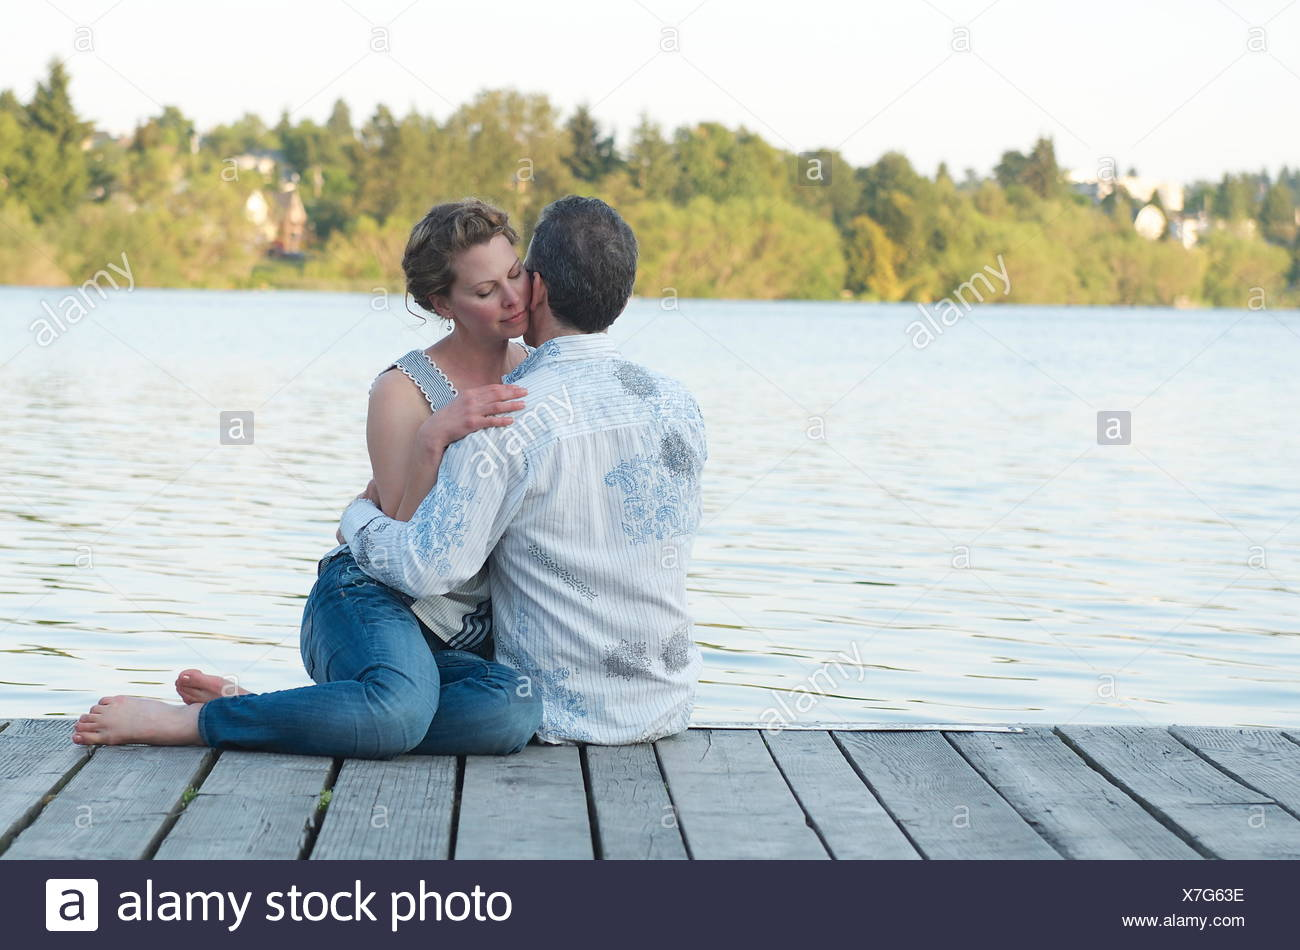 Couple sitting on a wooden jetty embracing - Stock Image